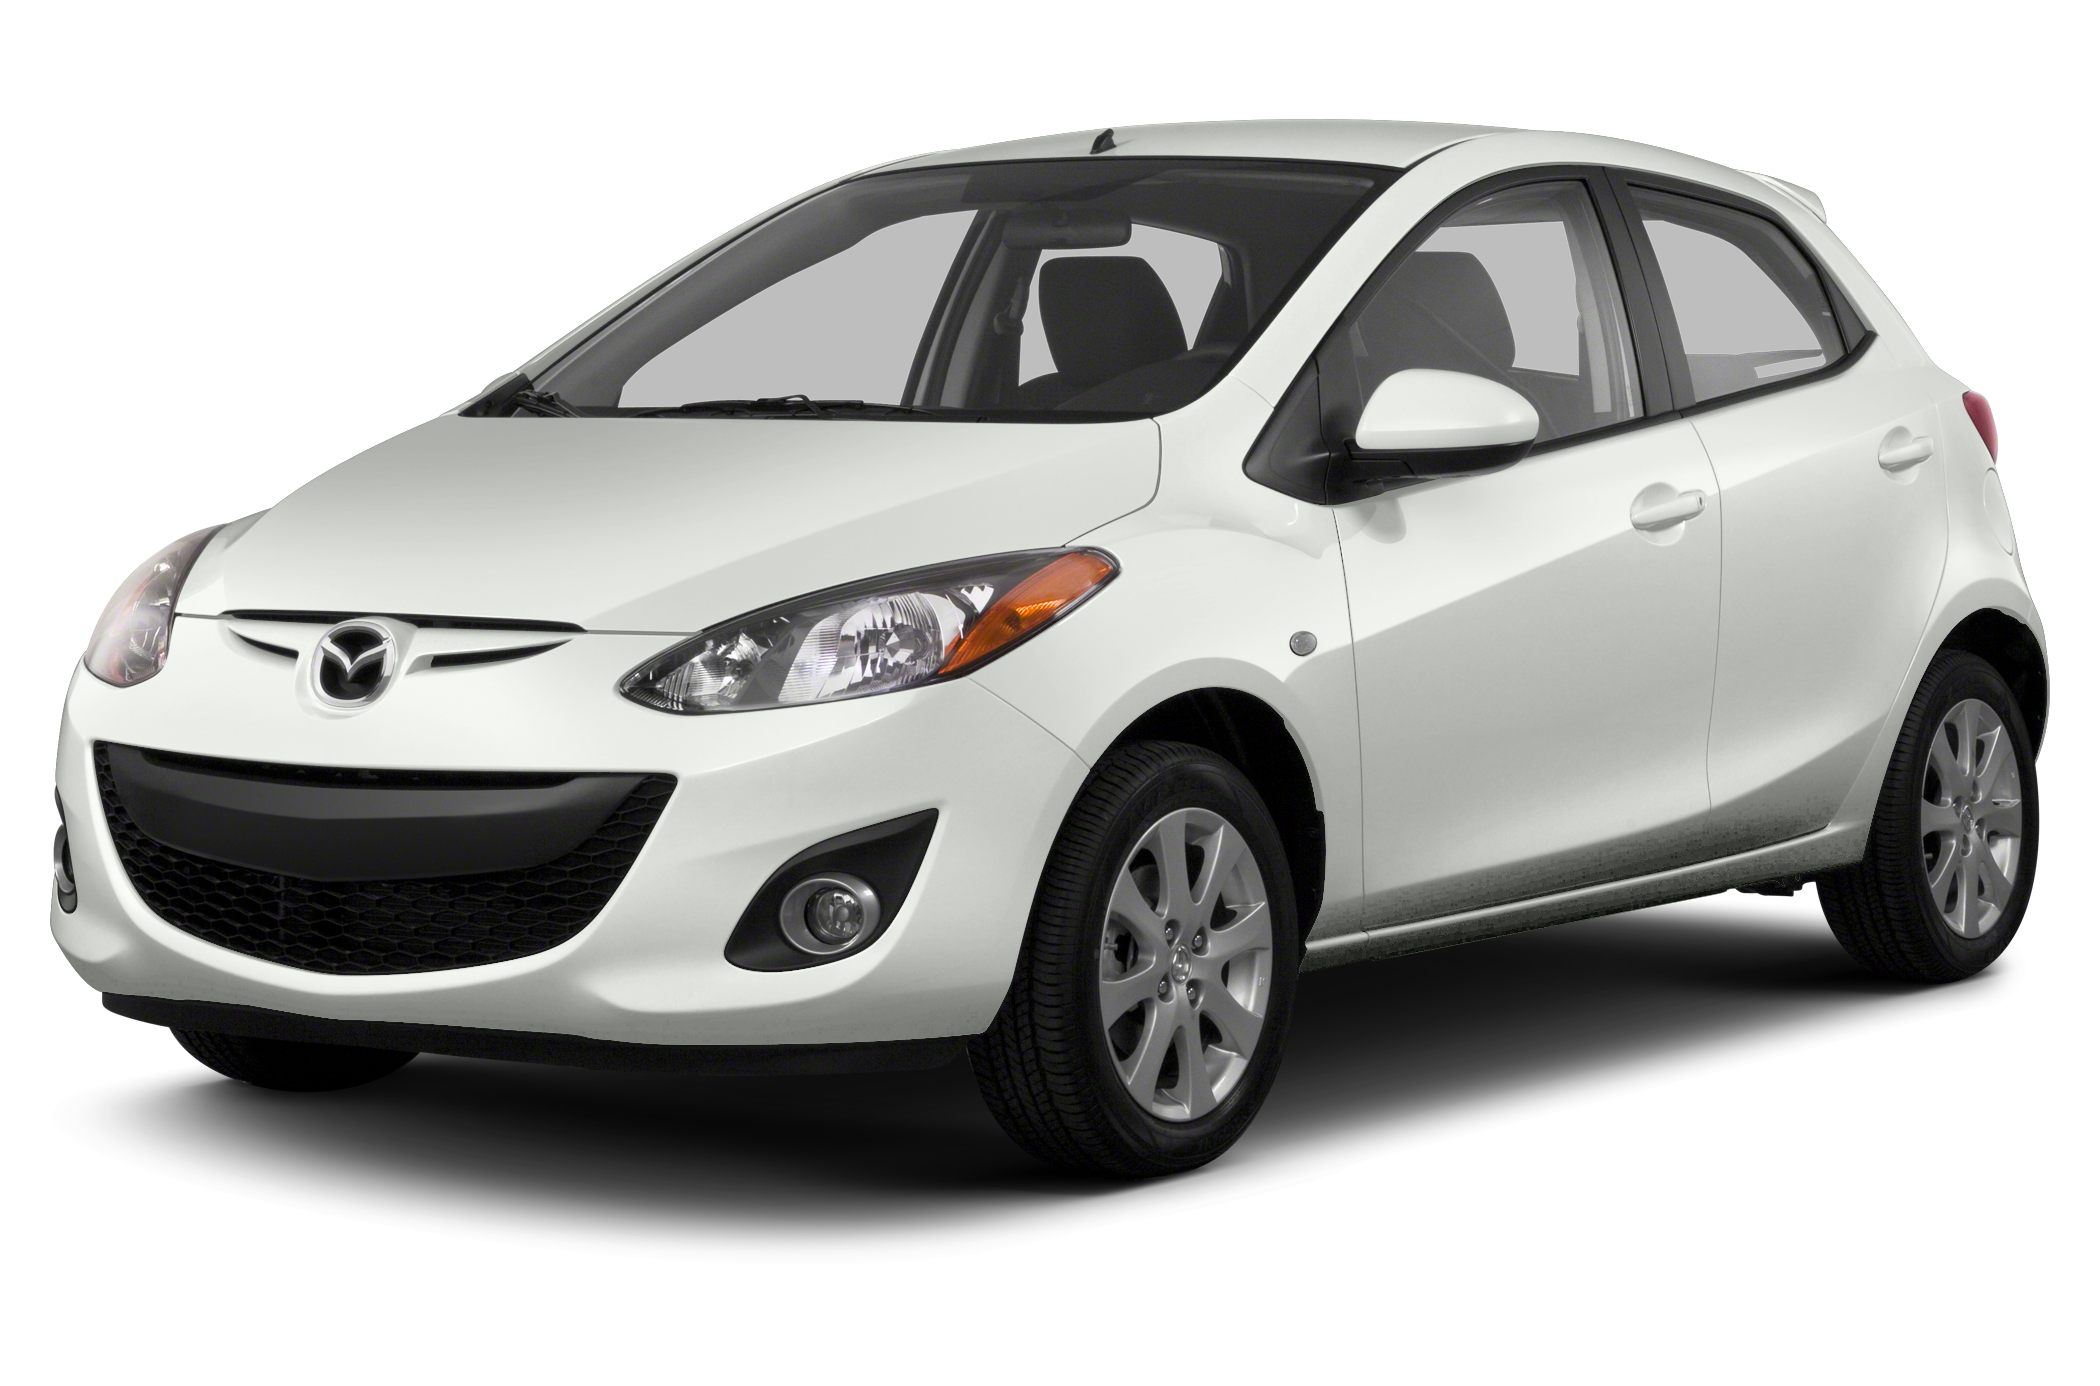 2013 Mazda Mazda2 Sport Hatchback for sale in Midland for $10,275 with 23,376 miles